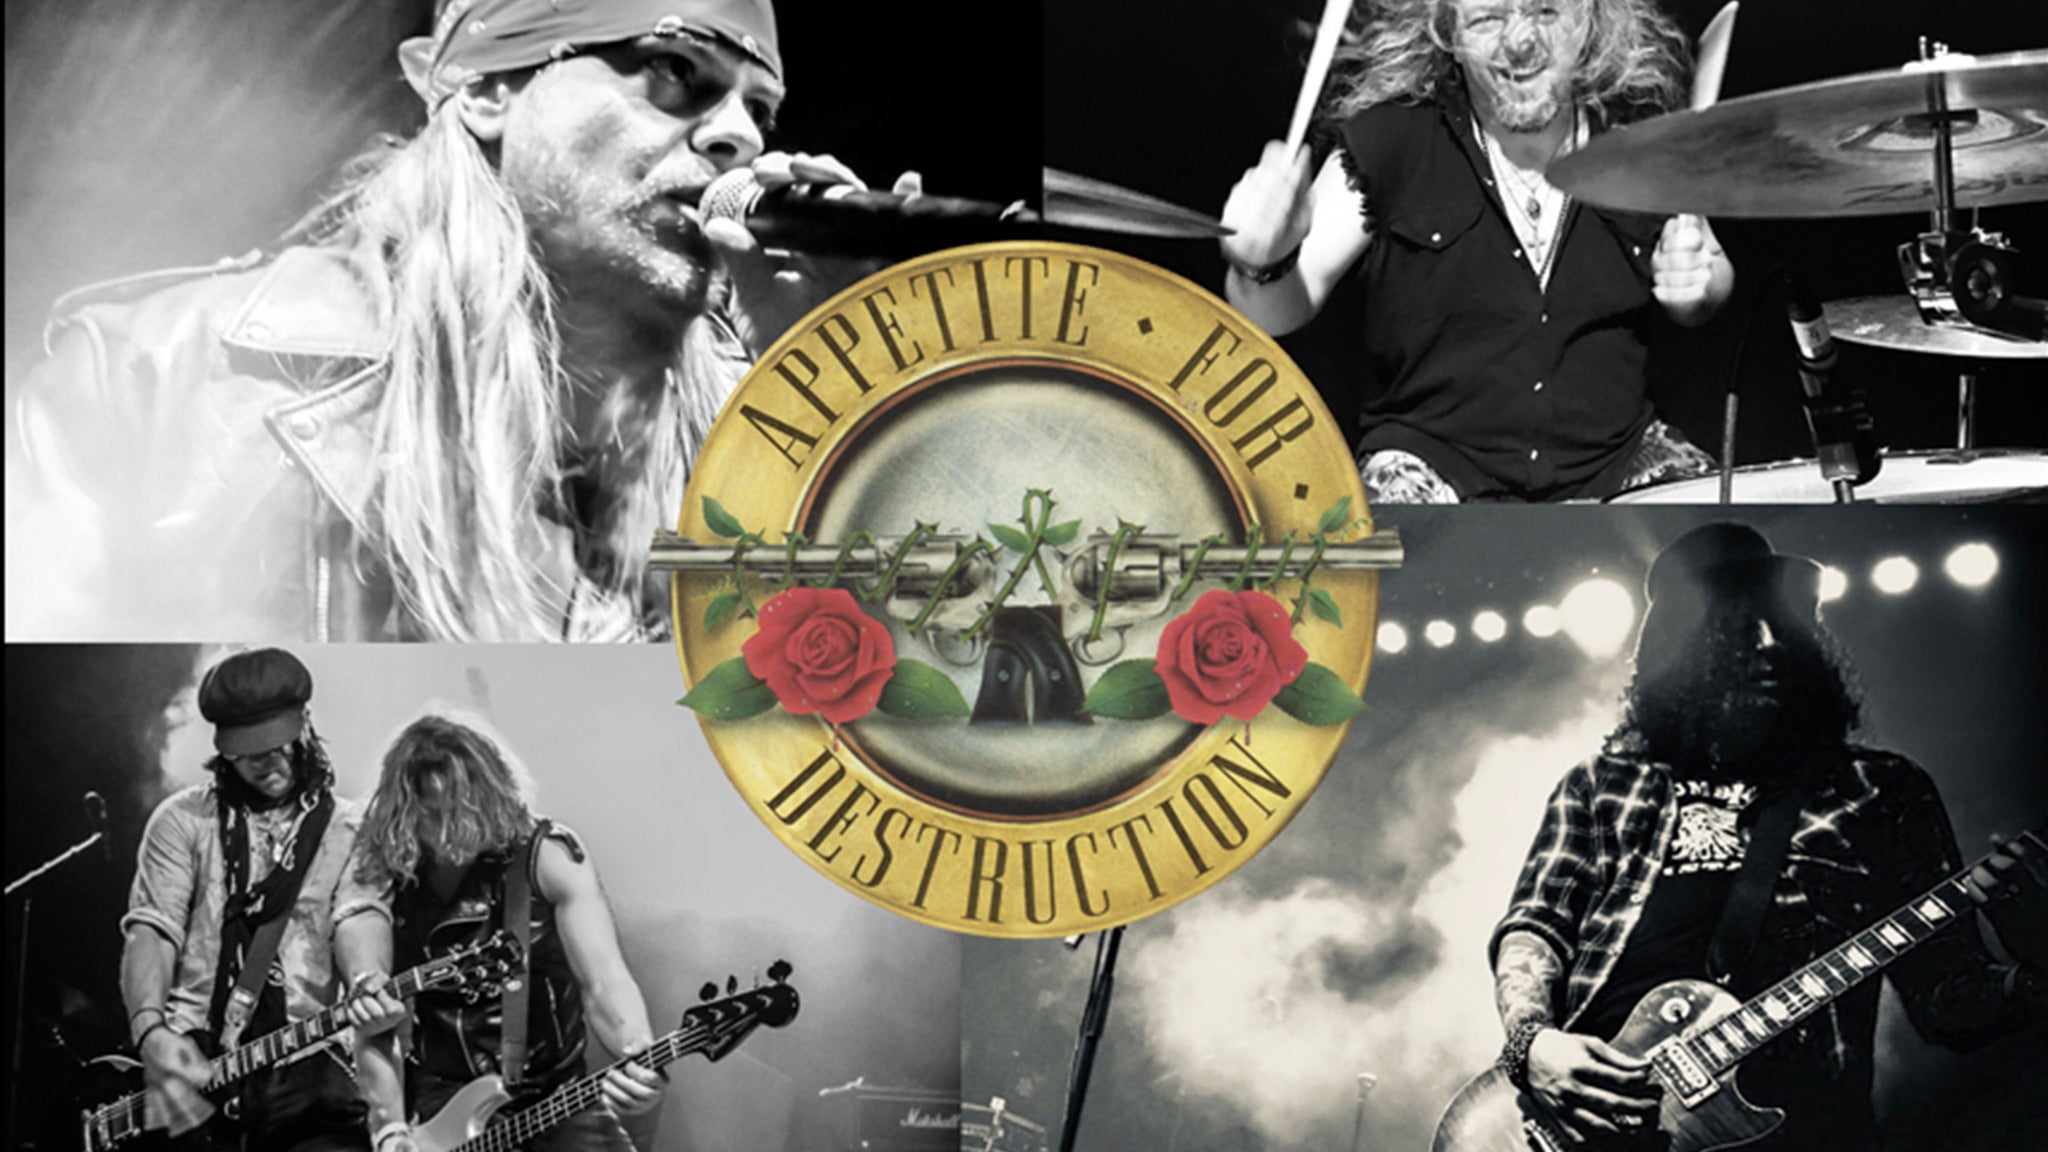 Appetite for Destruction at Revolution Live